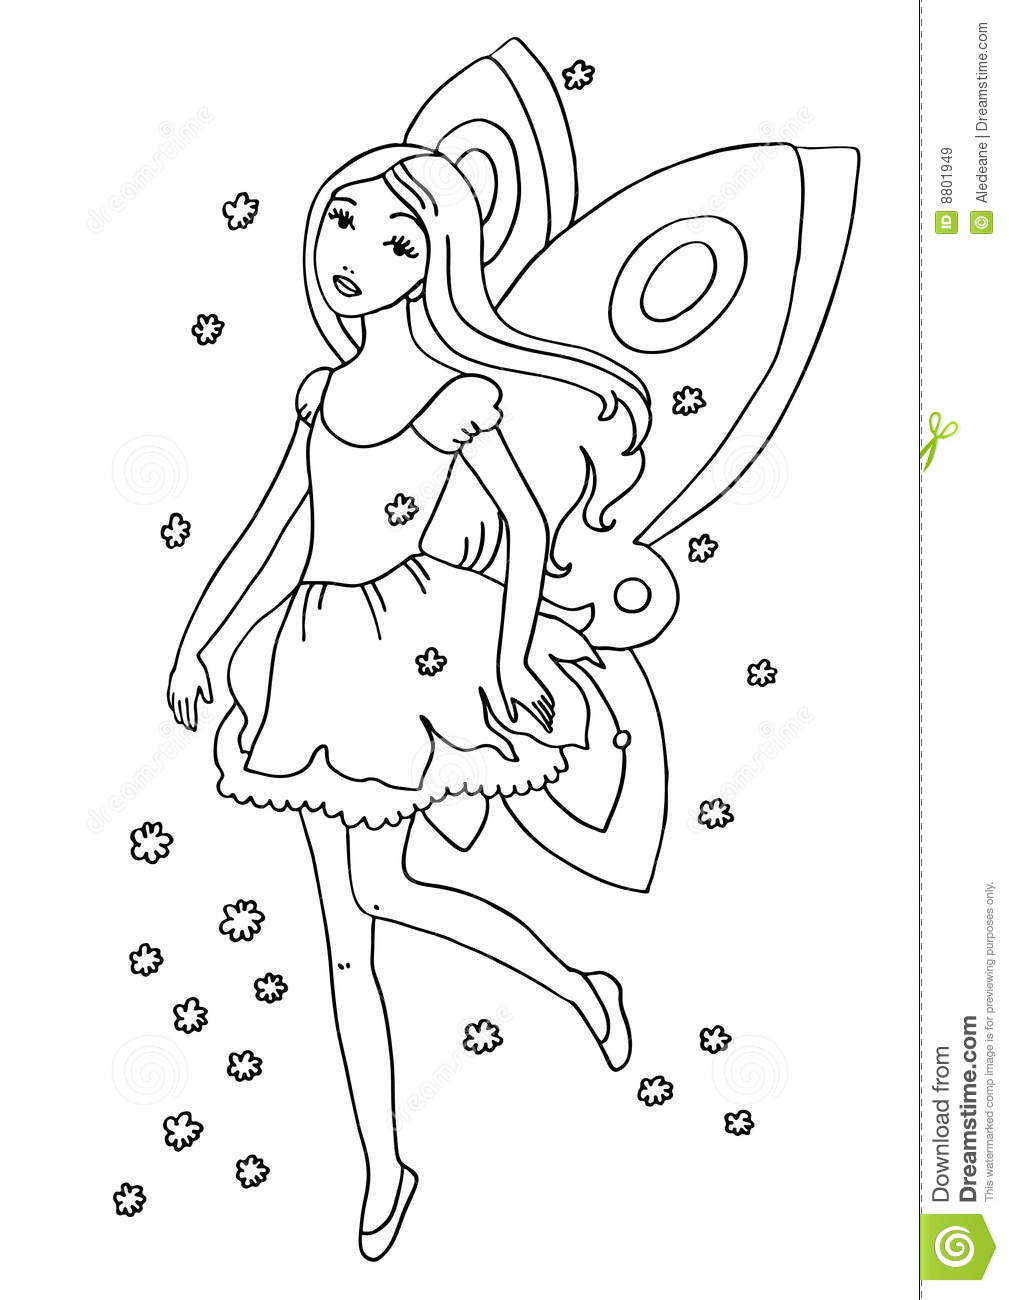 fairy coloring page royalty free stock images image 8801949